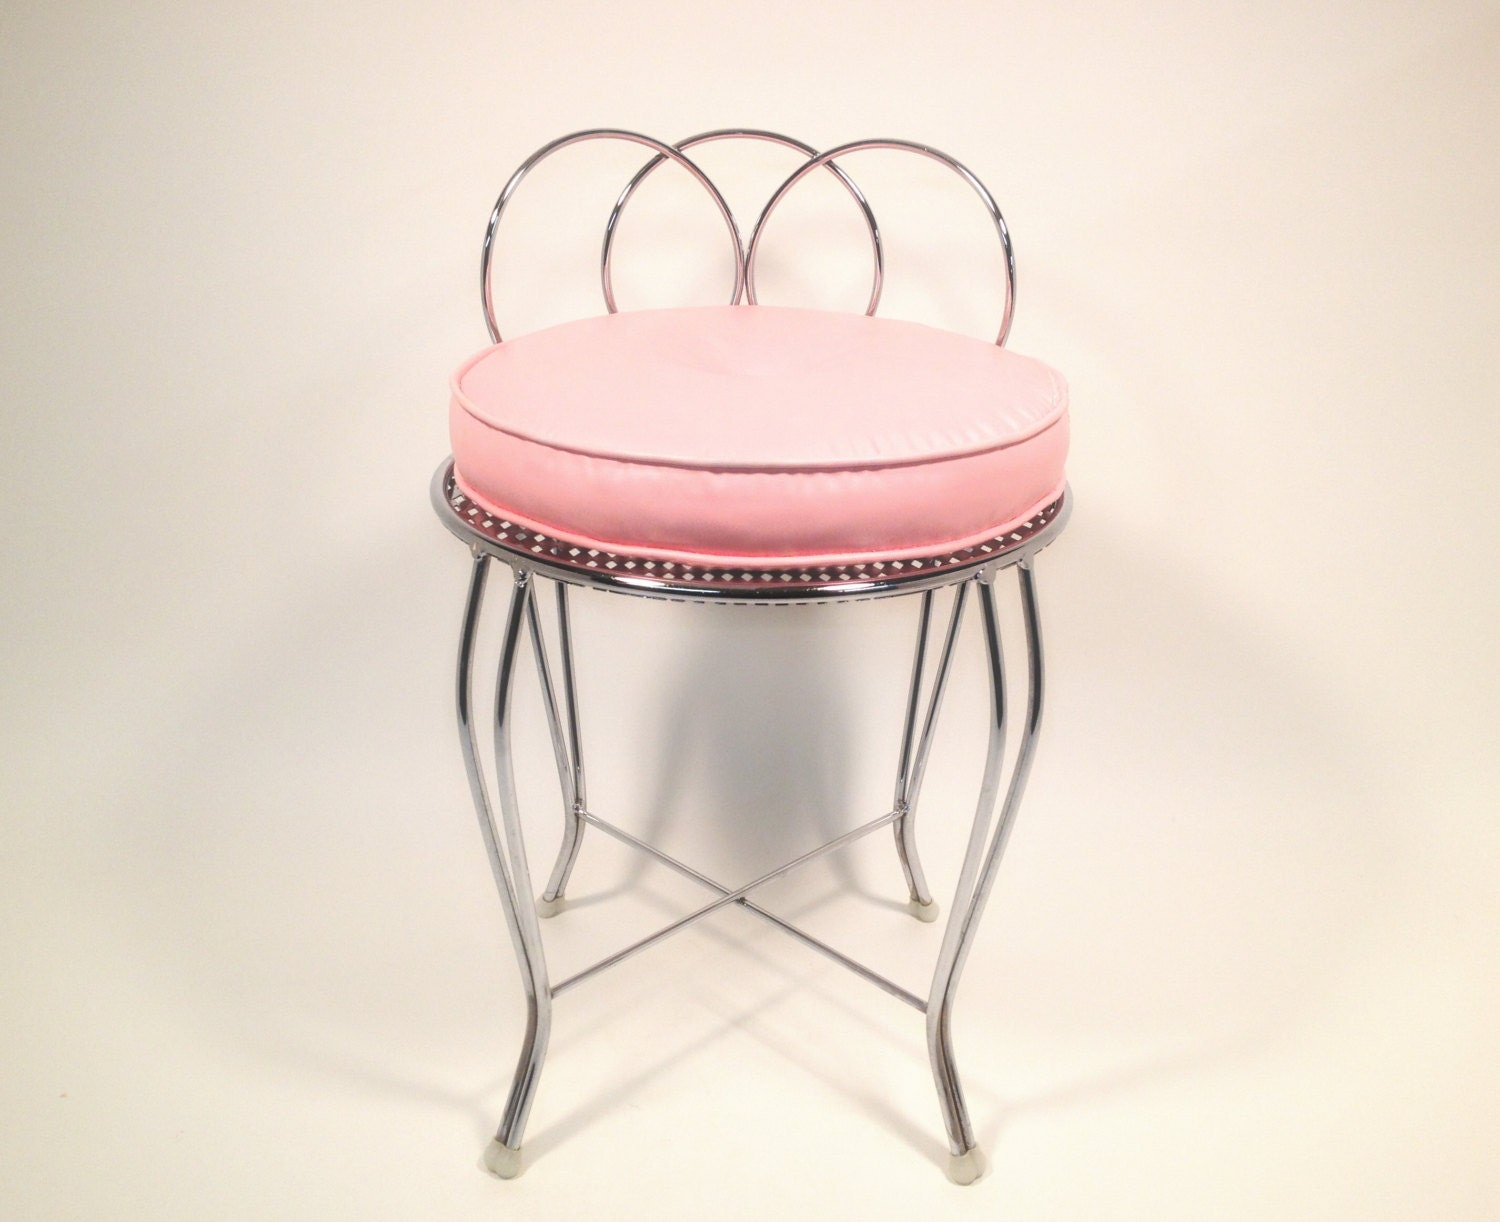 Mid Century Metal Vanity Chair With Pink Cushion By